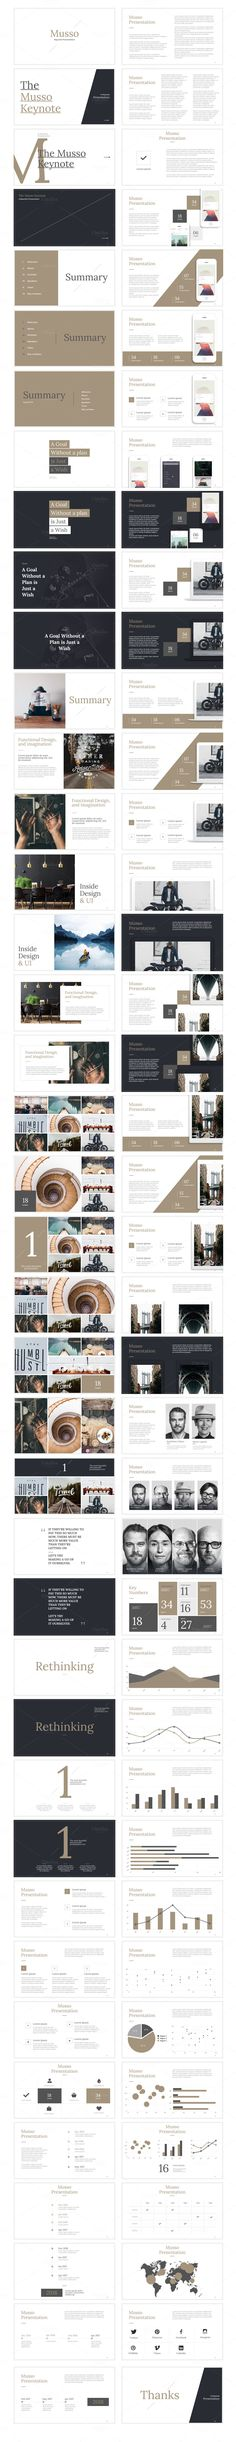 Musso Presentation by MarketMe on @creativemarket